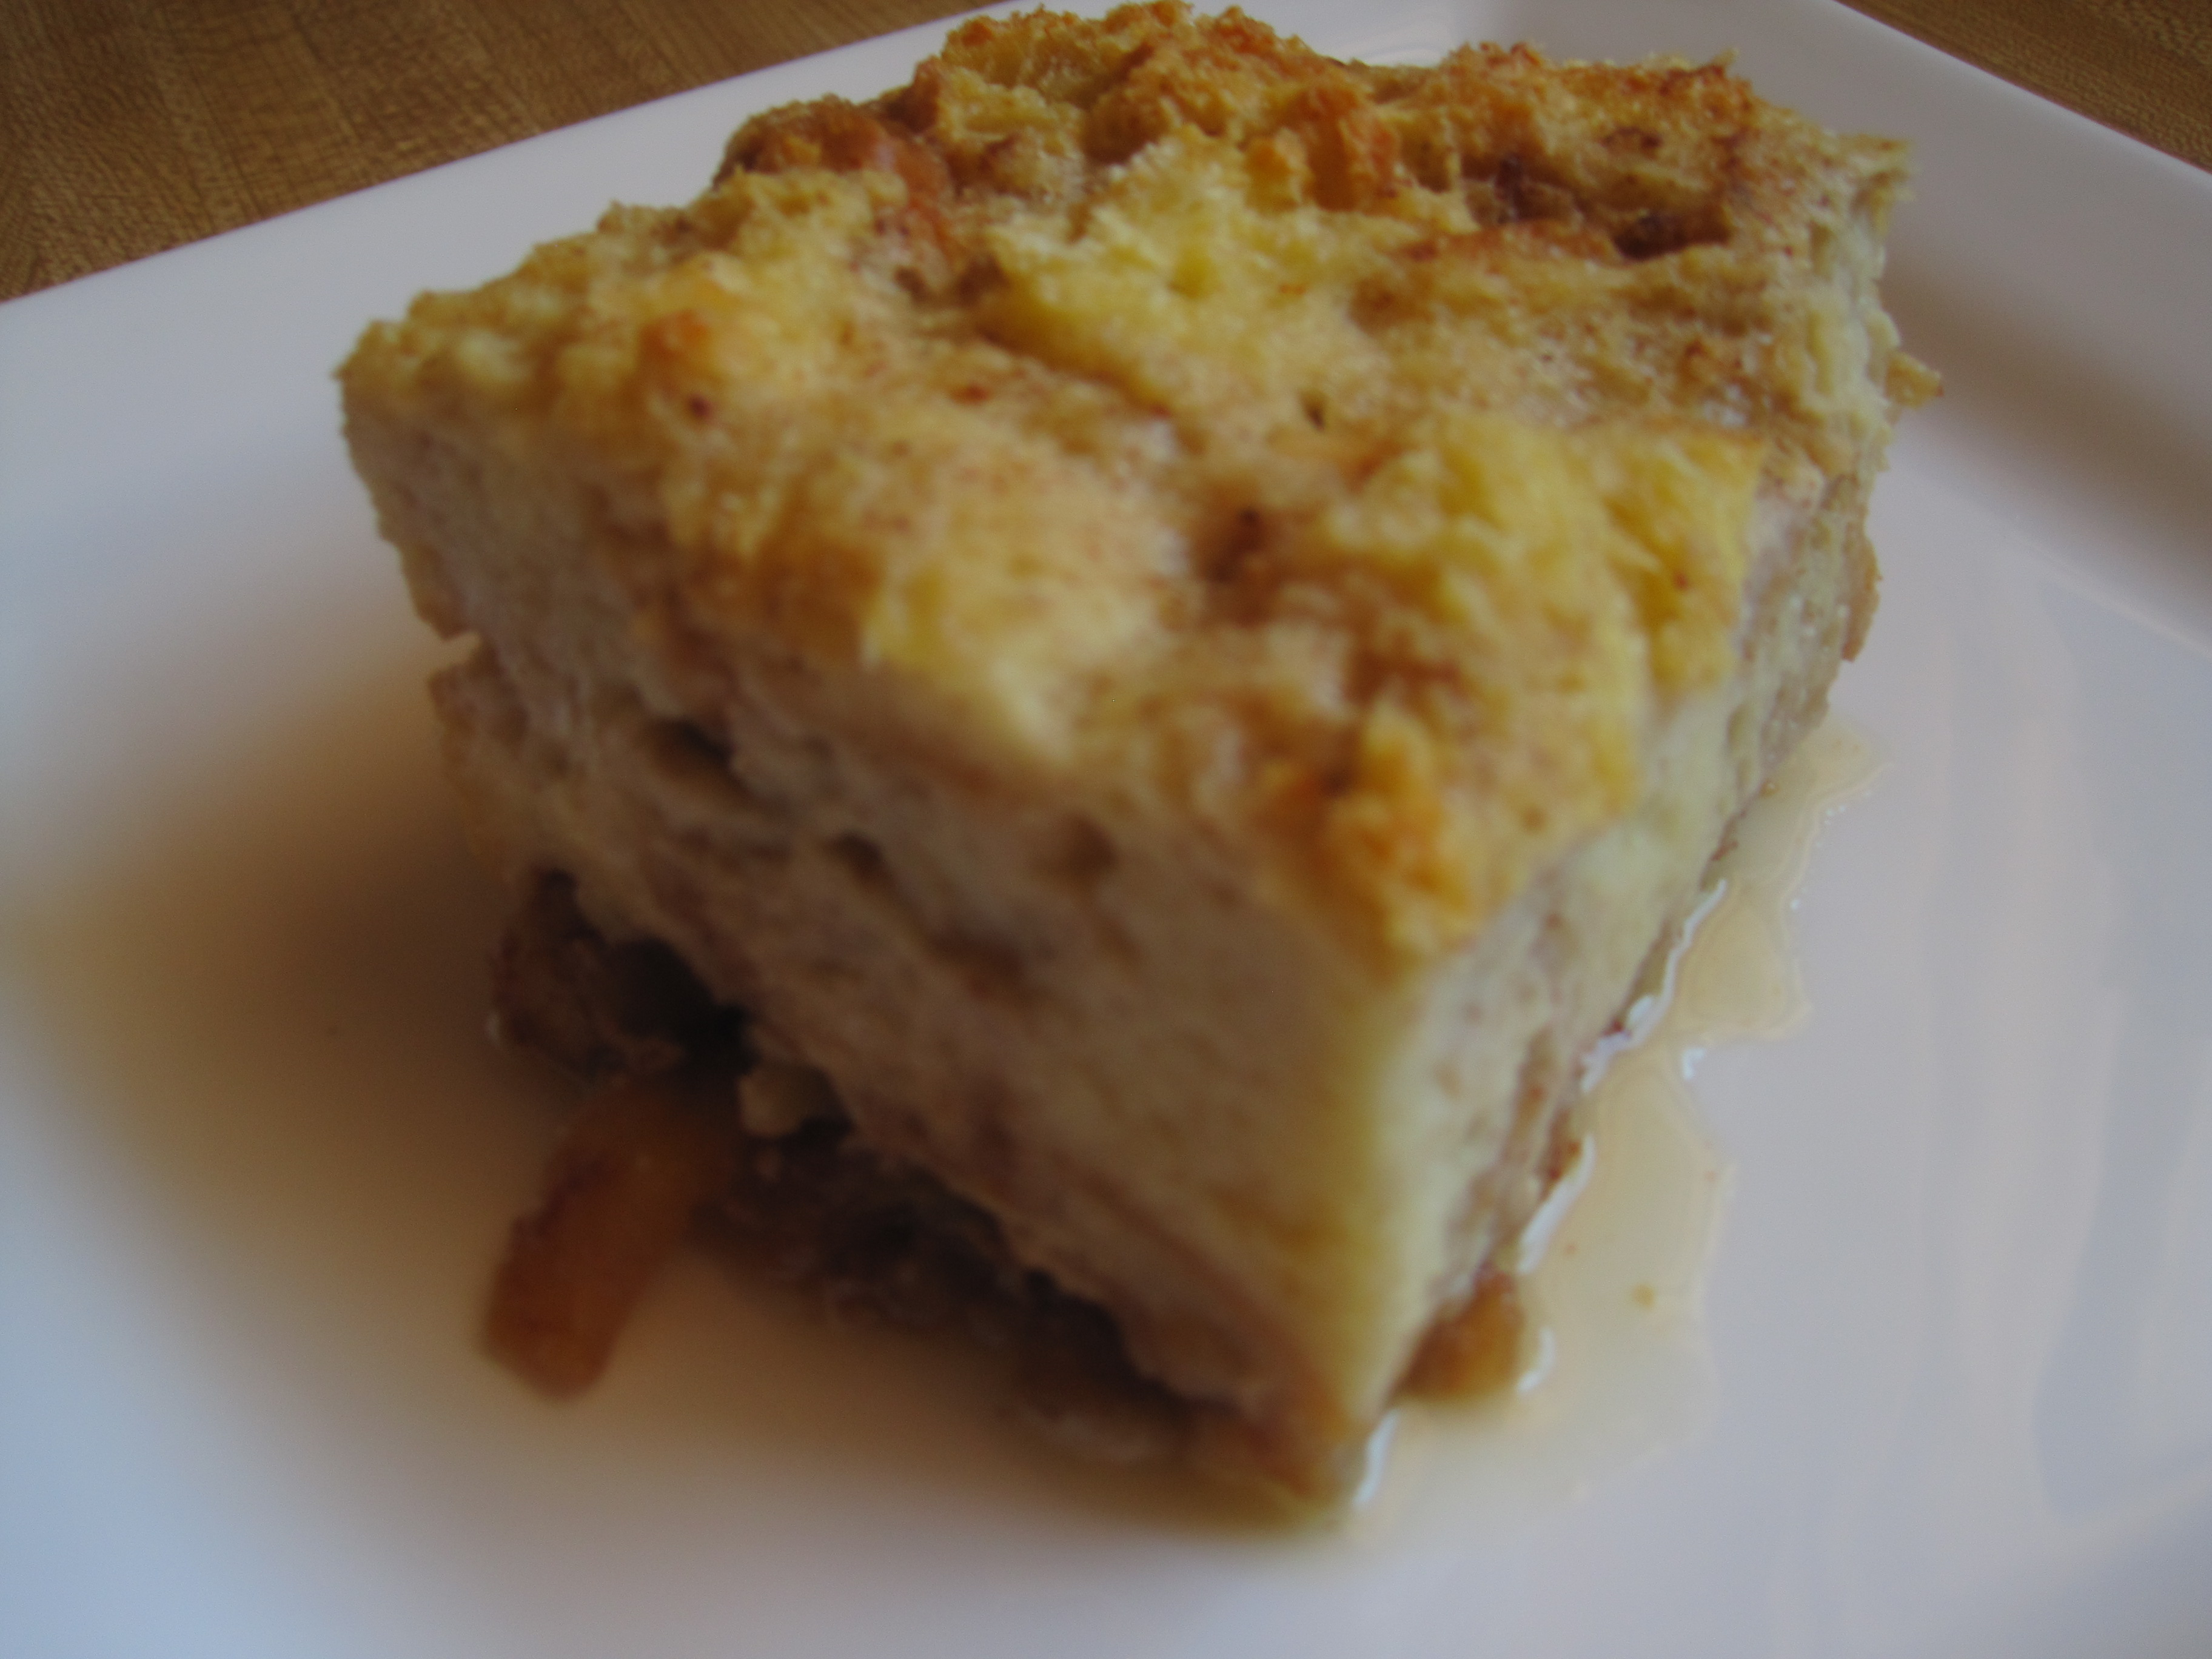 Sticky Bread Pudding with Apples